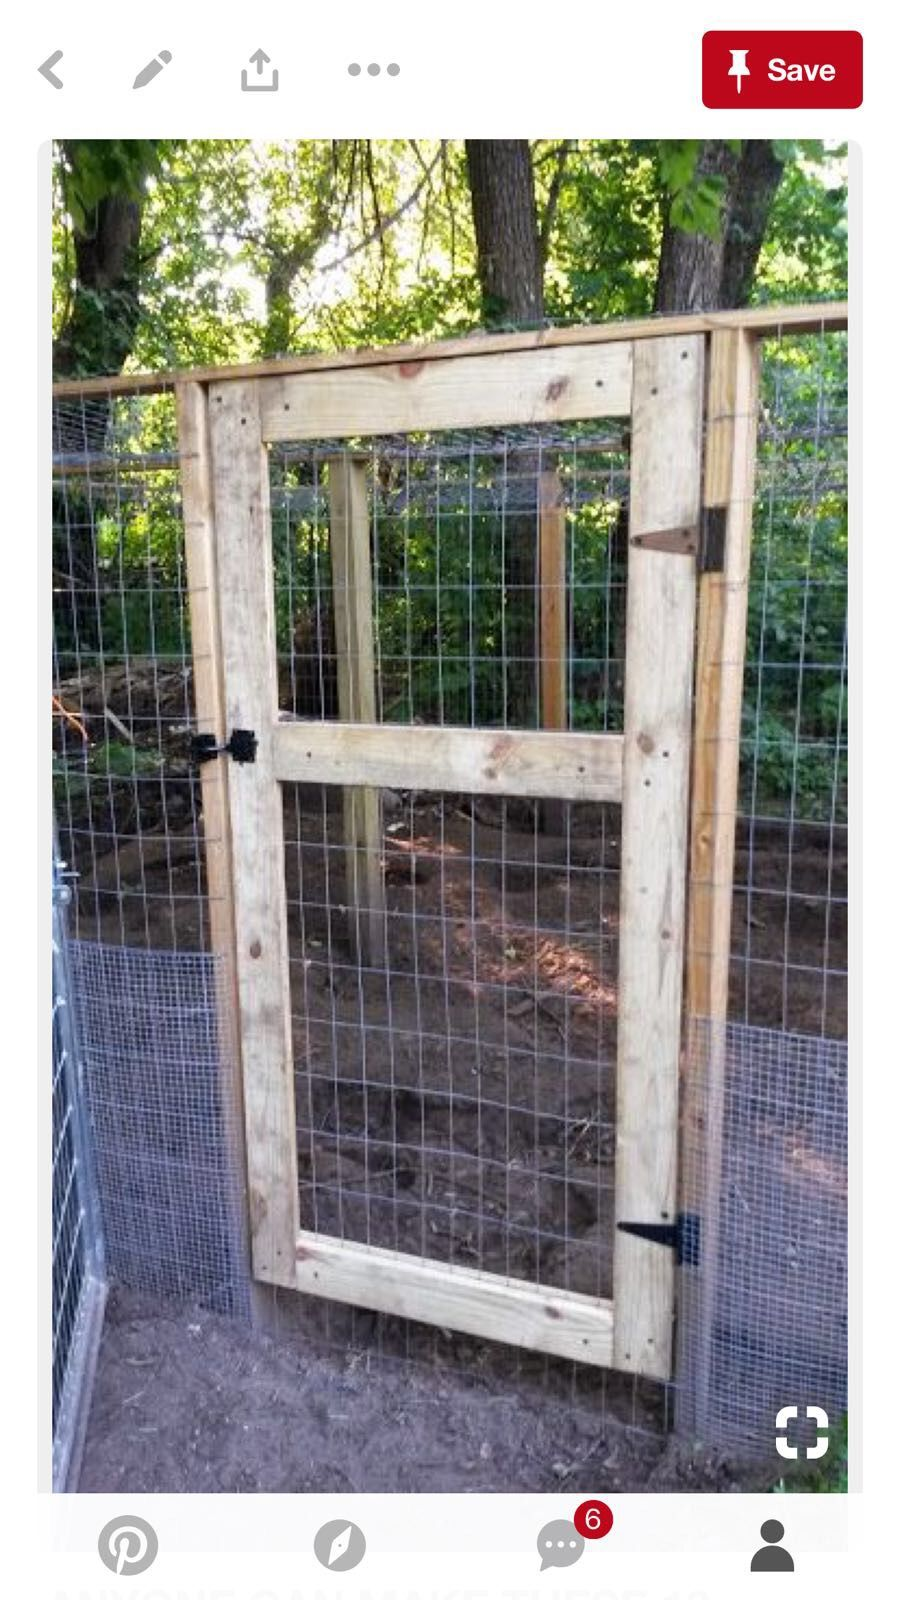 Coop Run Door Chicken Barn Diy Chicken Coop Chicken Coop